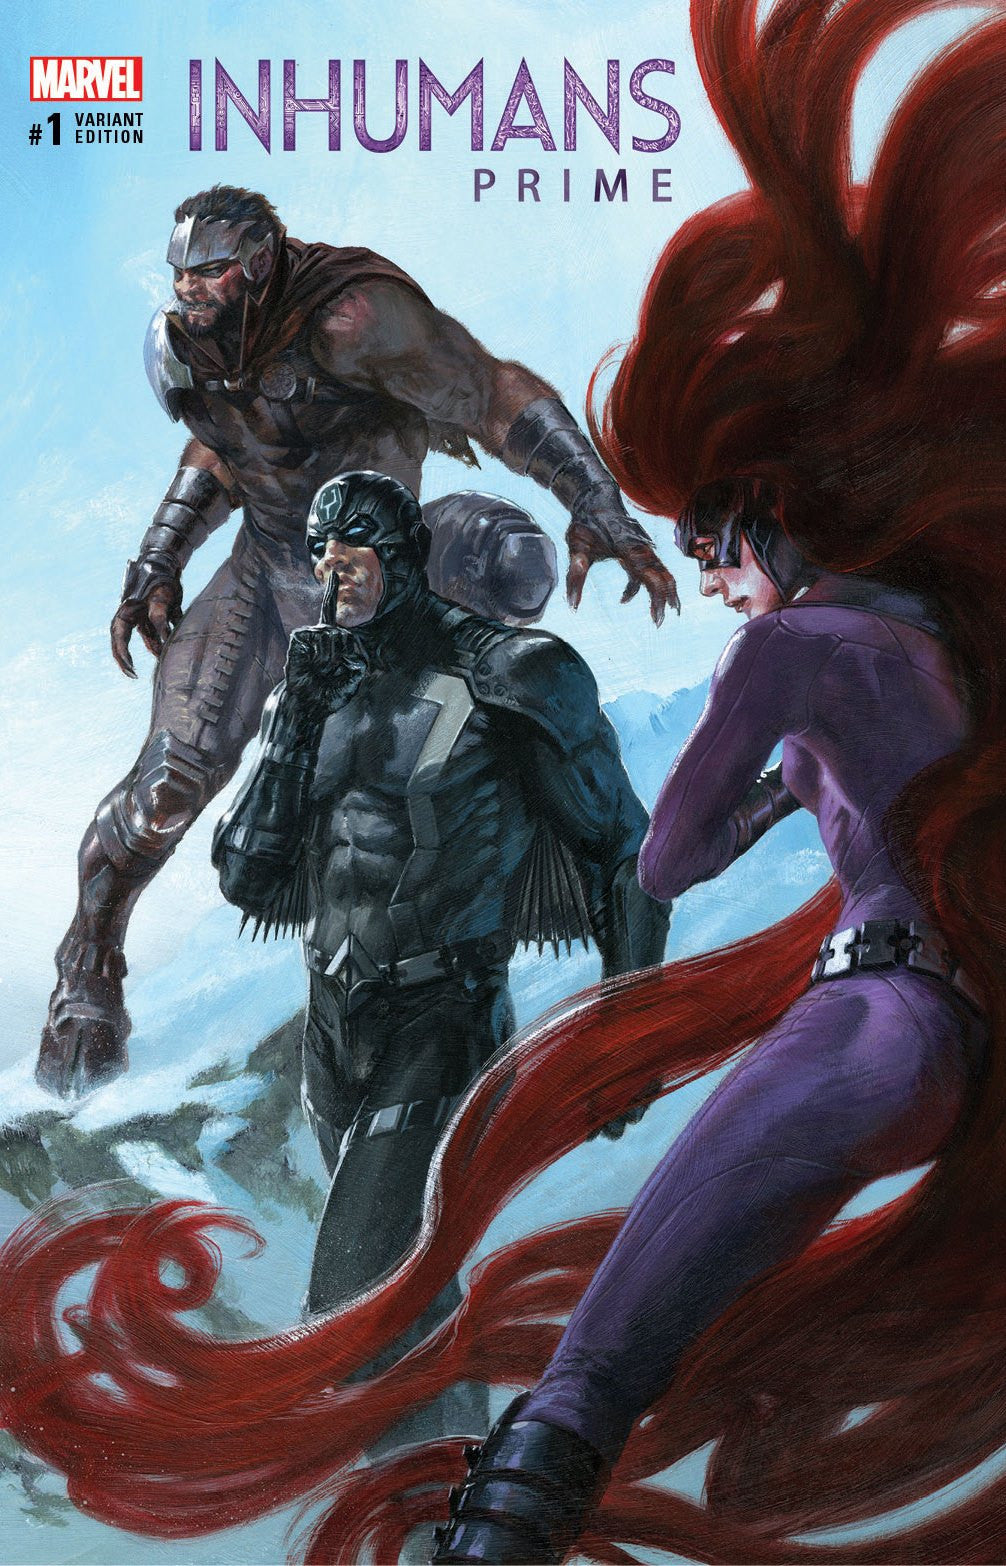 INHUMANS PRIME #1 KRS COMICS GABRIELE DELL'OTTO EXCLUSIVE